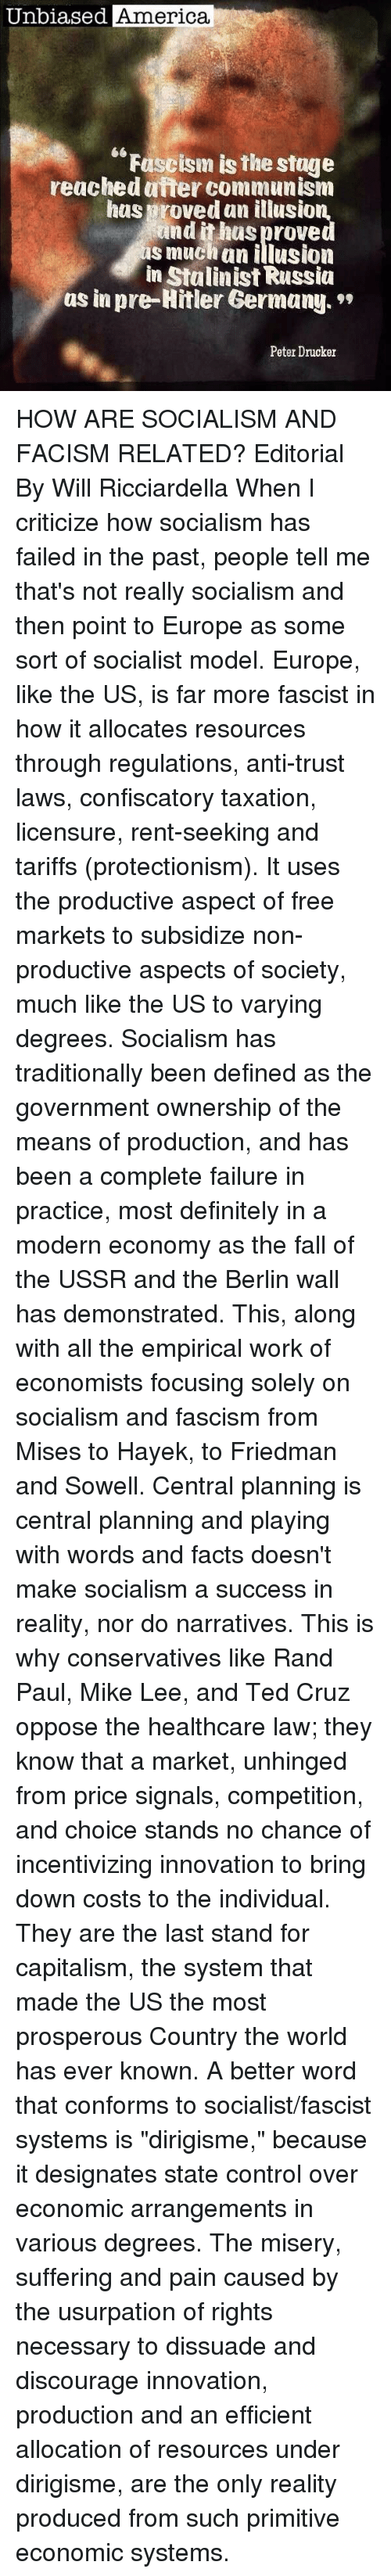 the cause of the downfall of socialismcommunism